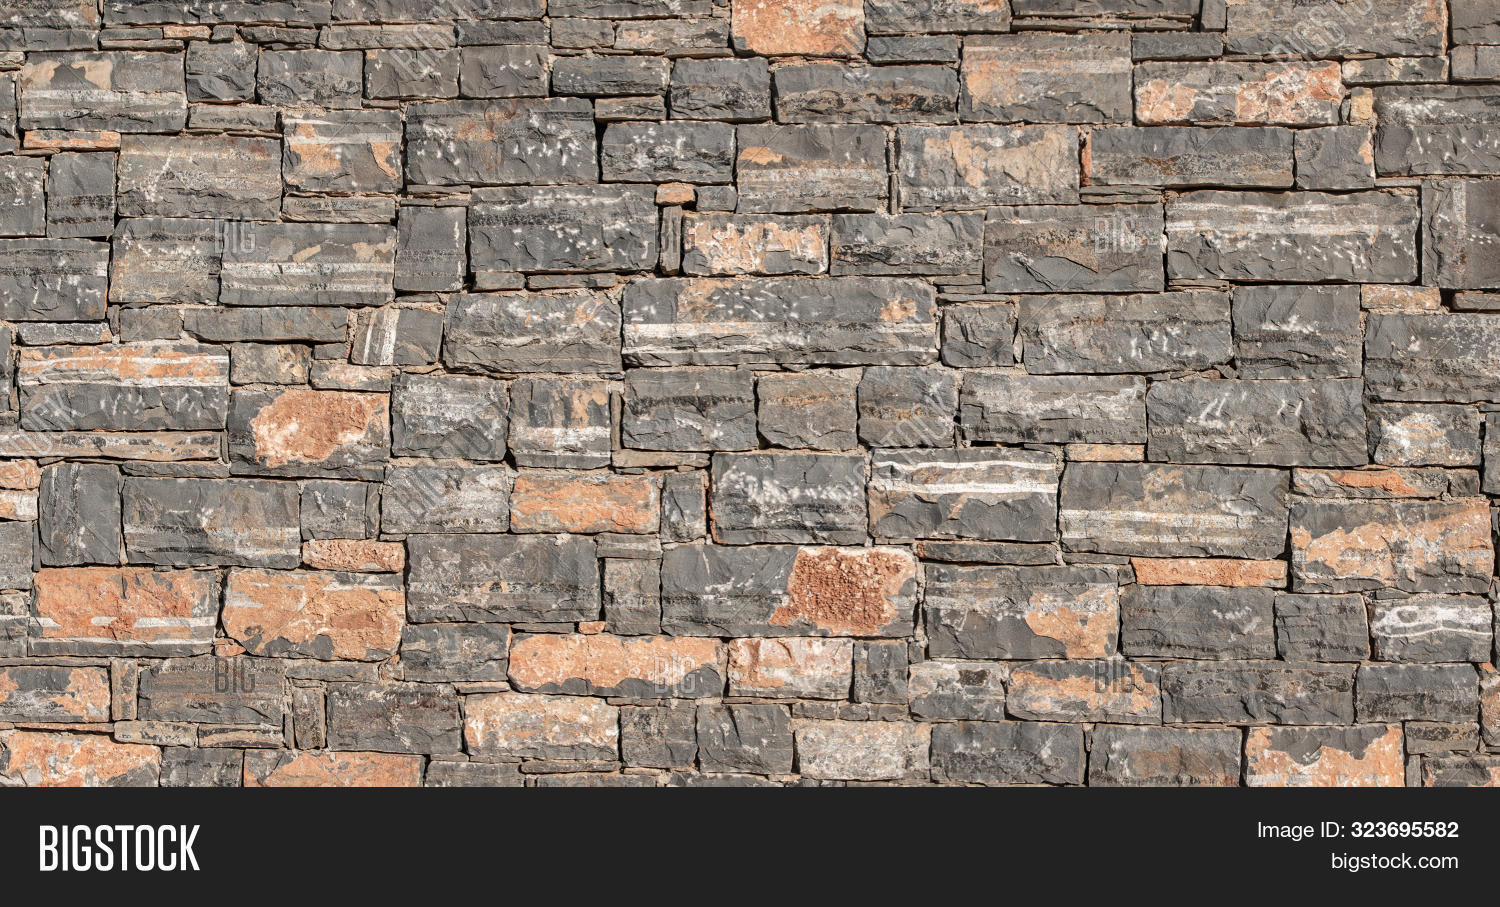 Hd Texture Of A Stone. Old Stone Wall Texture Background. Grey Stone Wall As A Background Or Texture